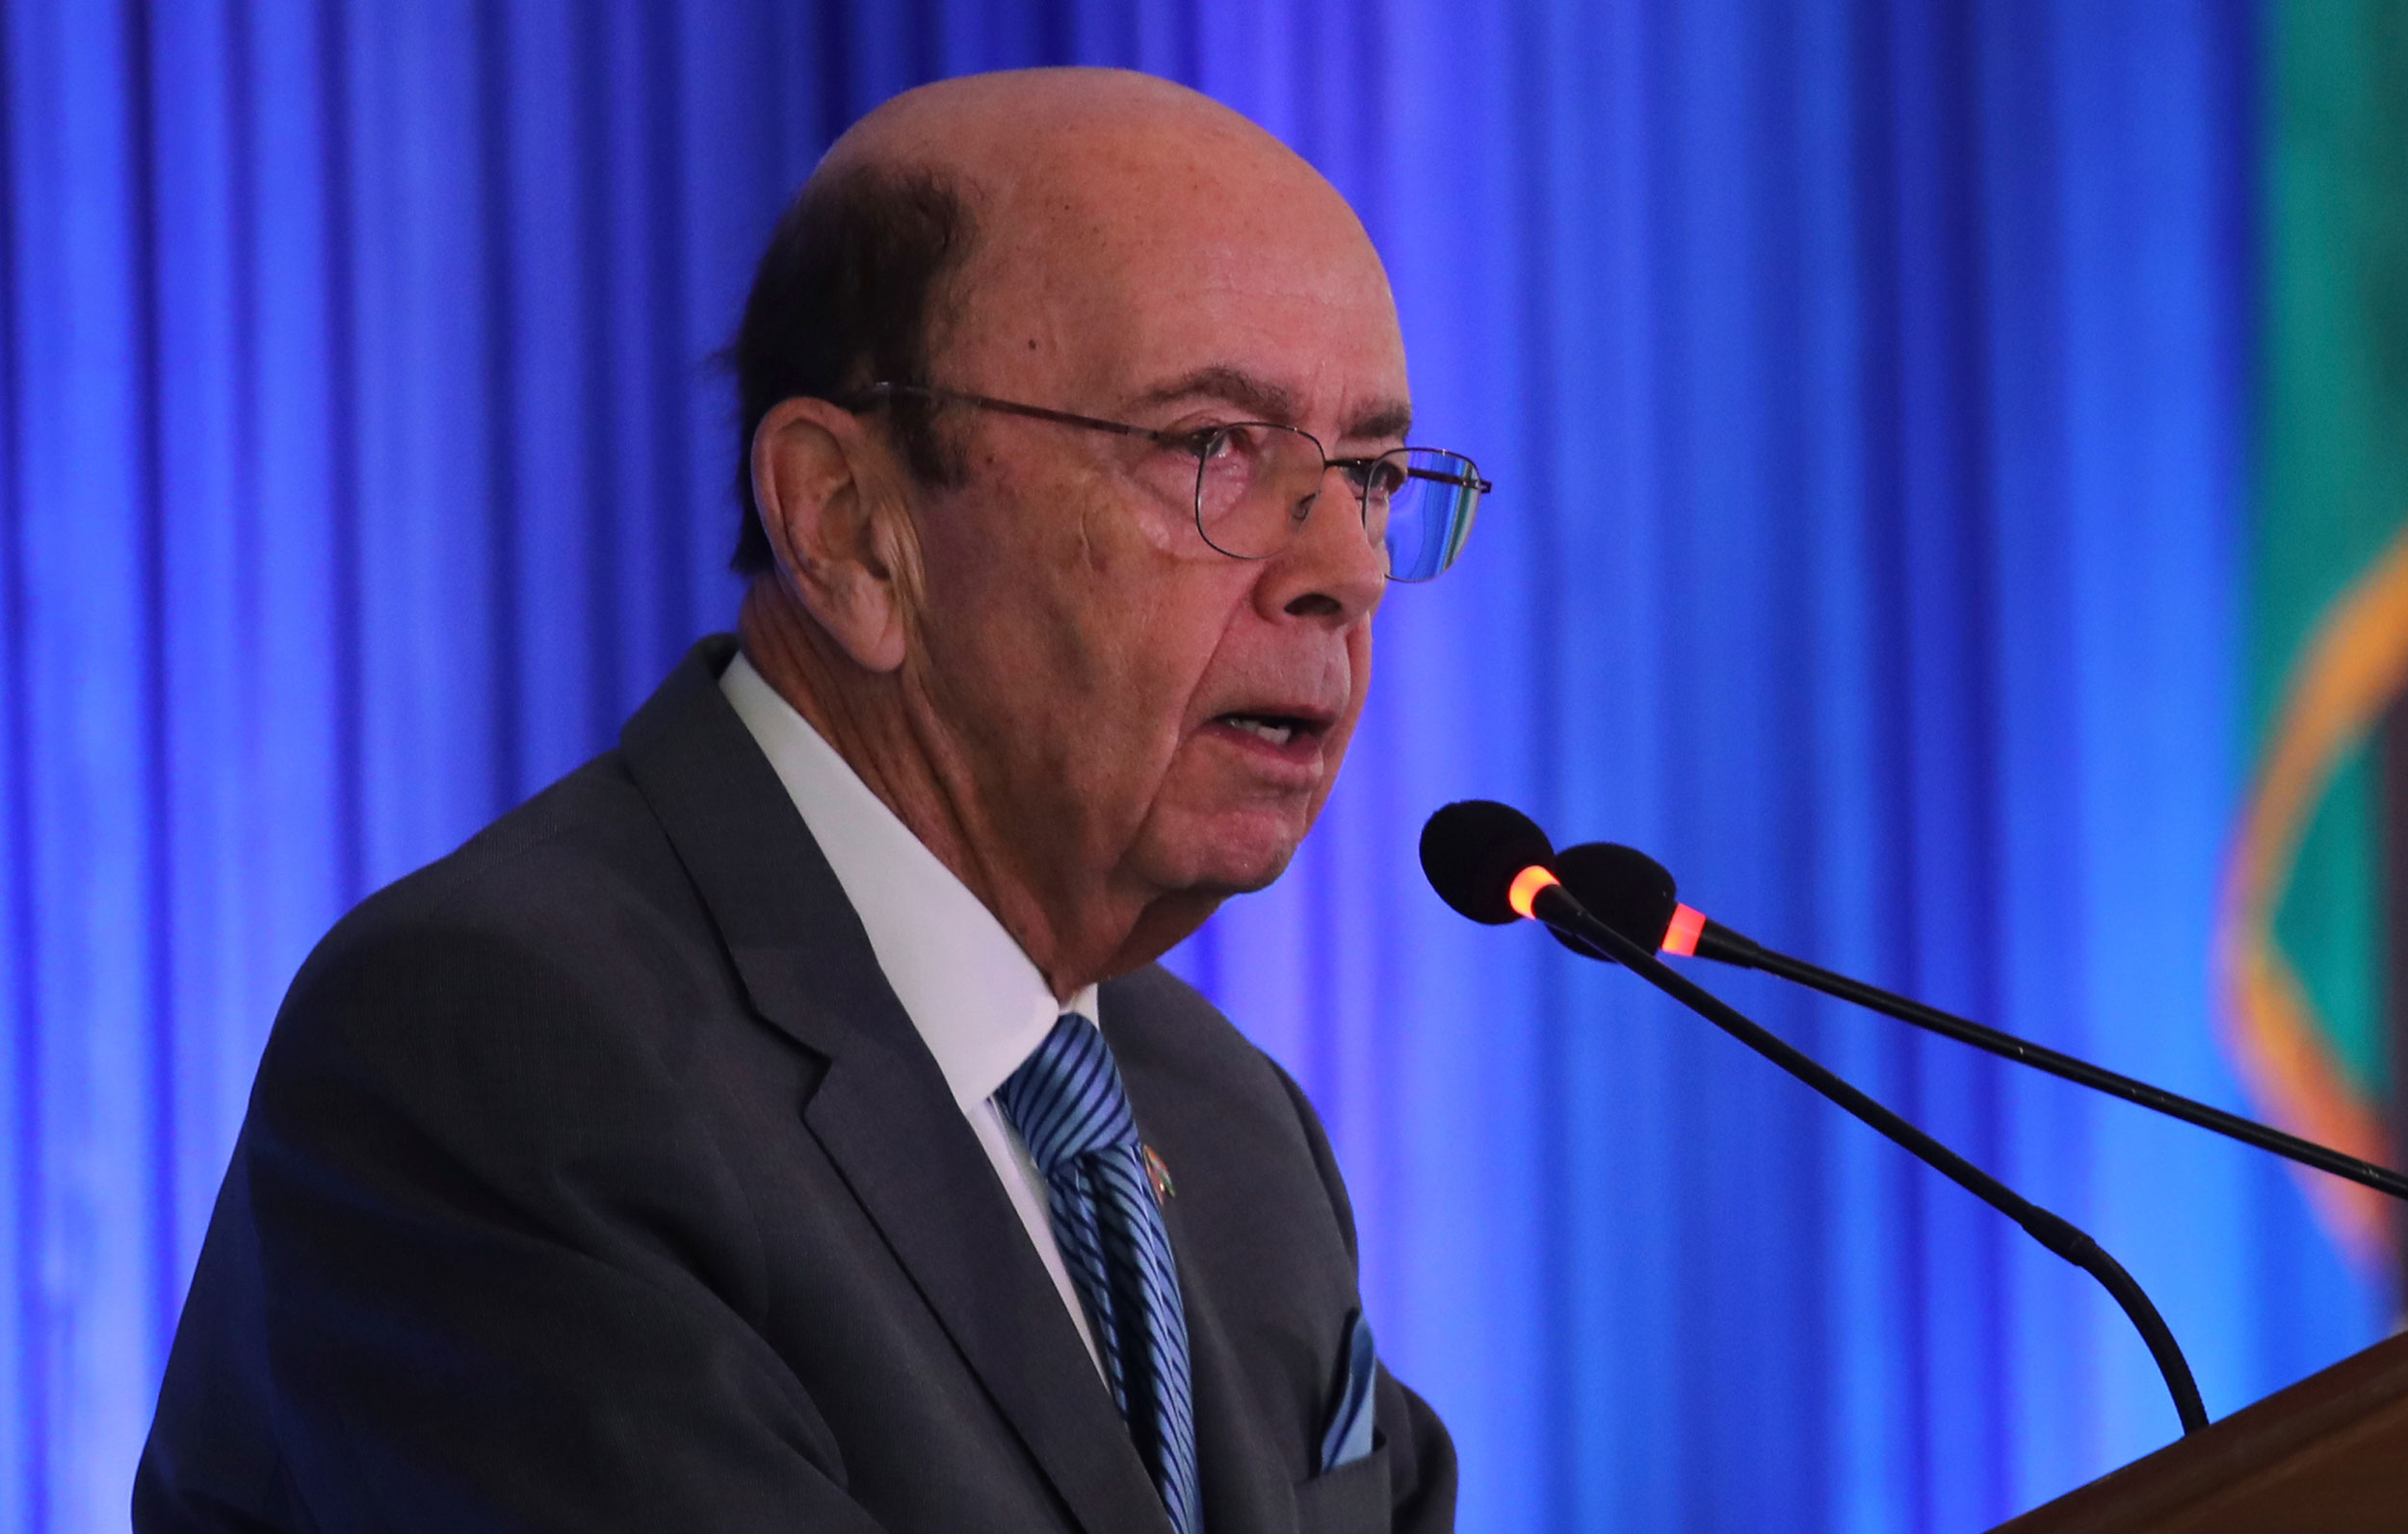 US wants India to eliminate trade barriers for American companies: Wilbur Ross